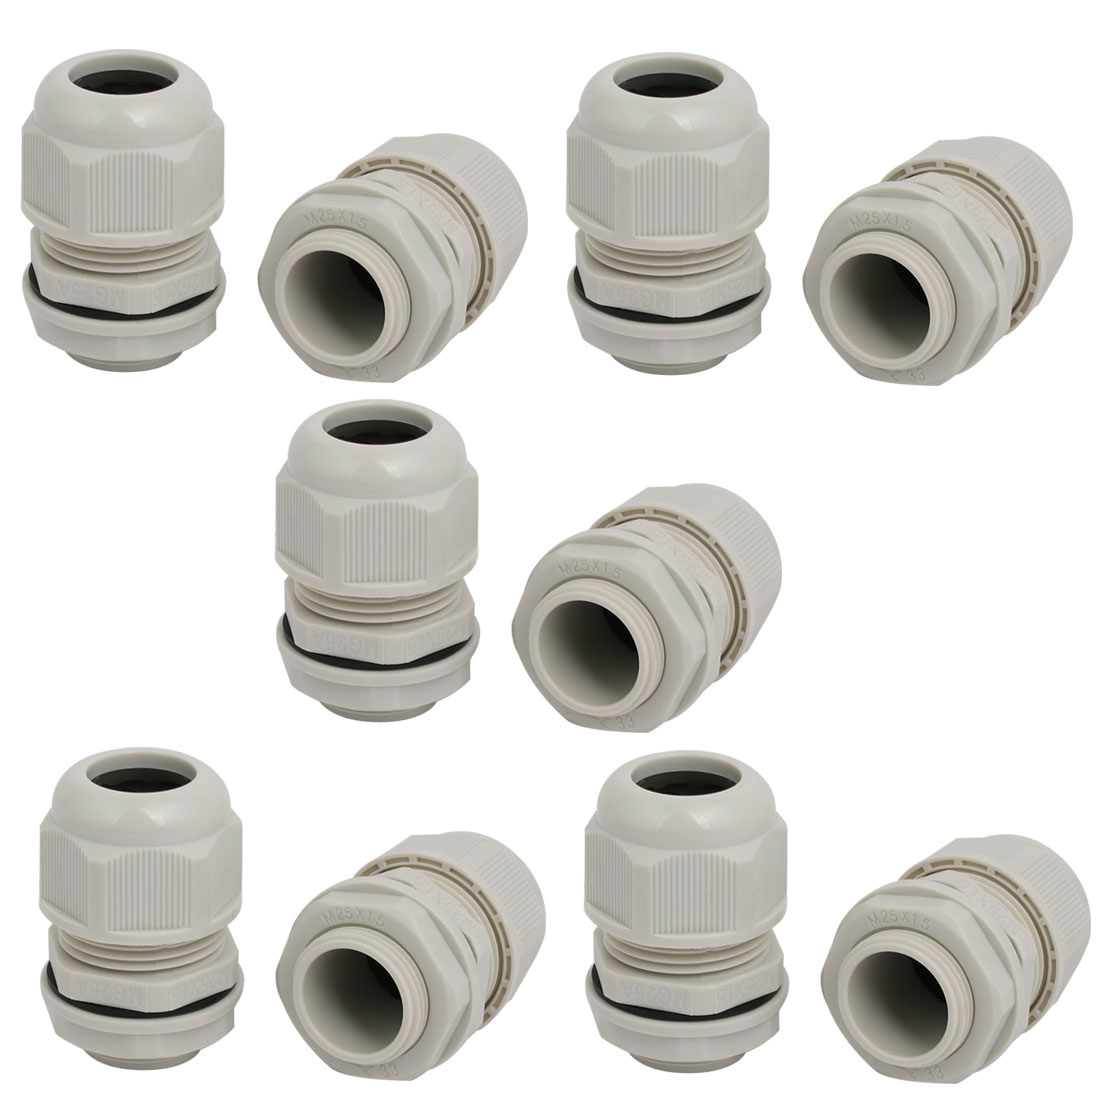 M25x1.5mm Nylon 3 Holes Adjustable Cables Gland Joint Connector Gray 10pcs